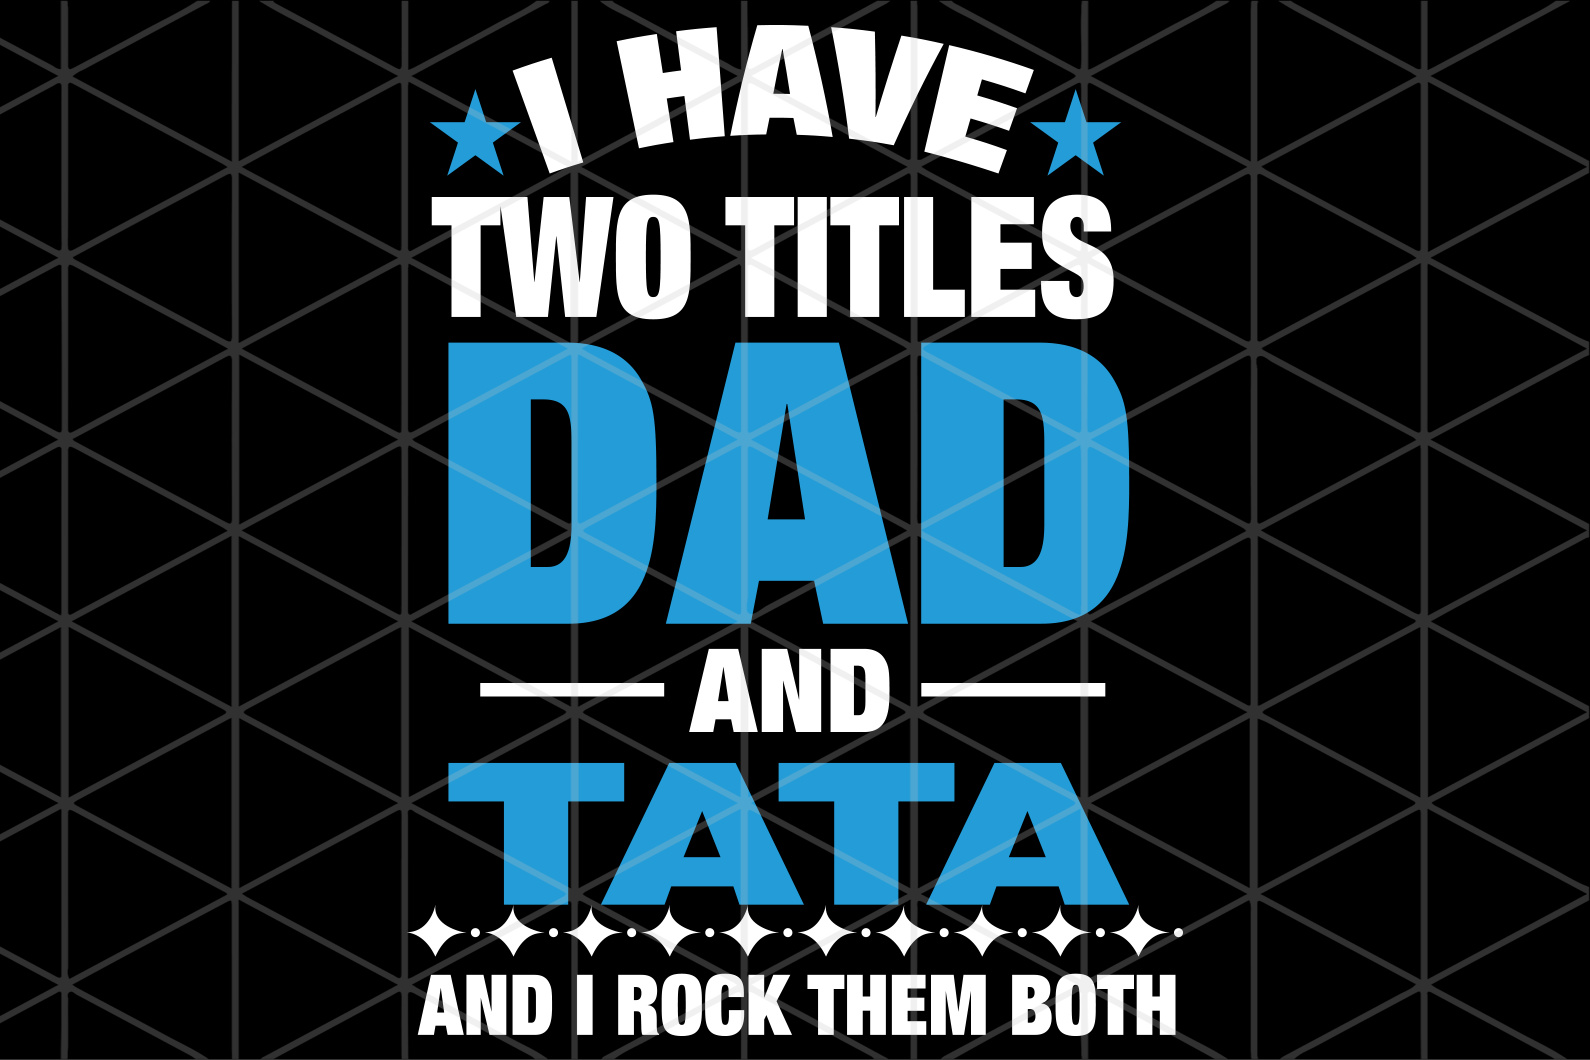 I have two titles dad and tata and i rock them both, papa svg, baba svg,father's day svg, father svg, dad svg, daddy svg, poppop svg Files For Silhouette, Files For Cricut, SVG, DXF, EPS, PNG, Instant Download